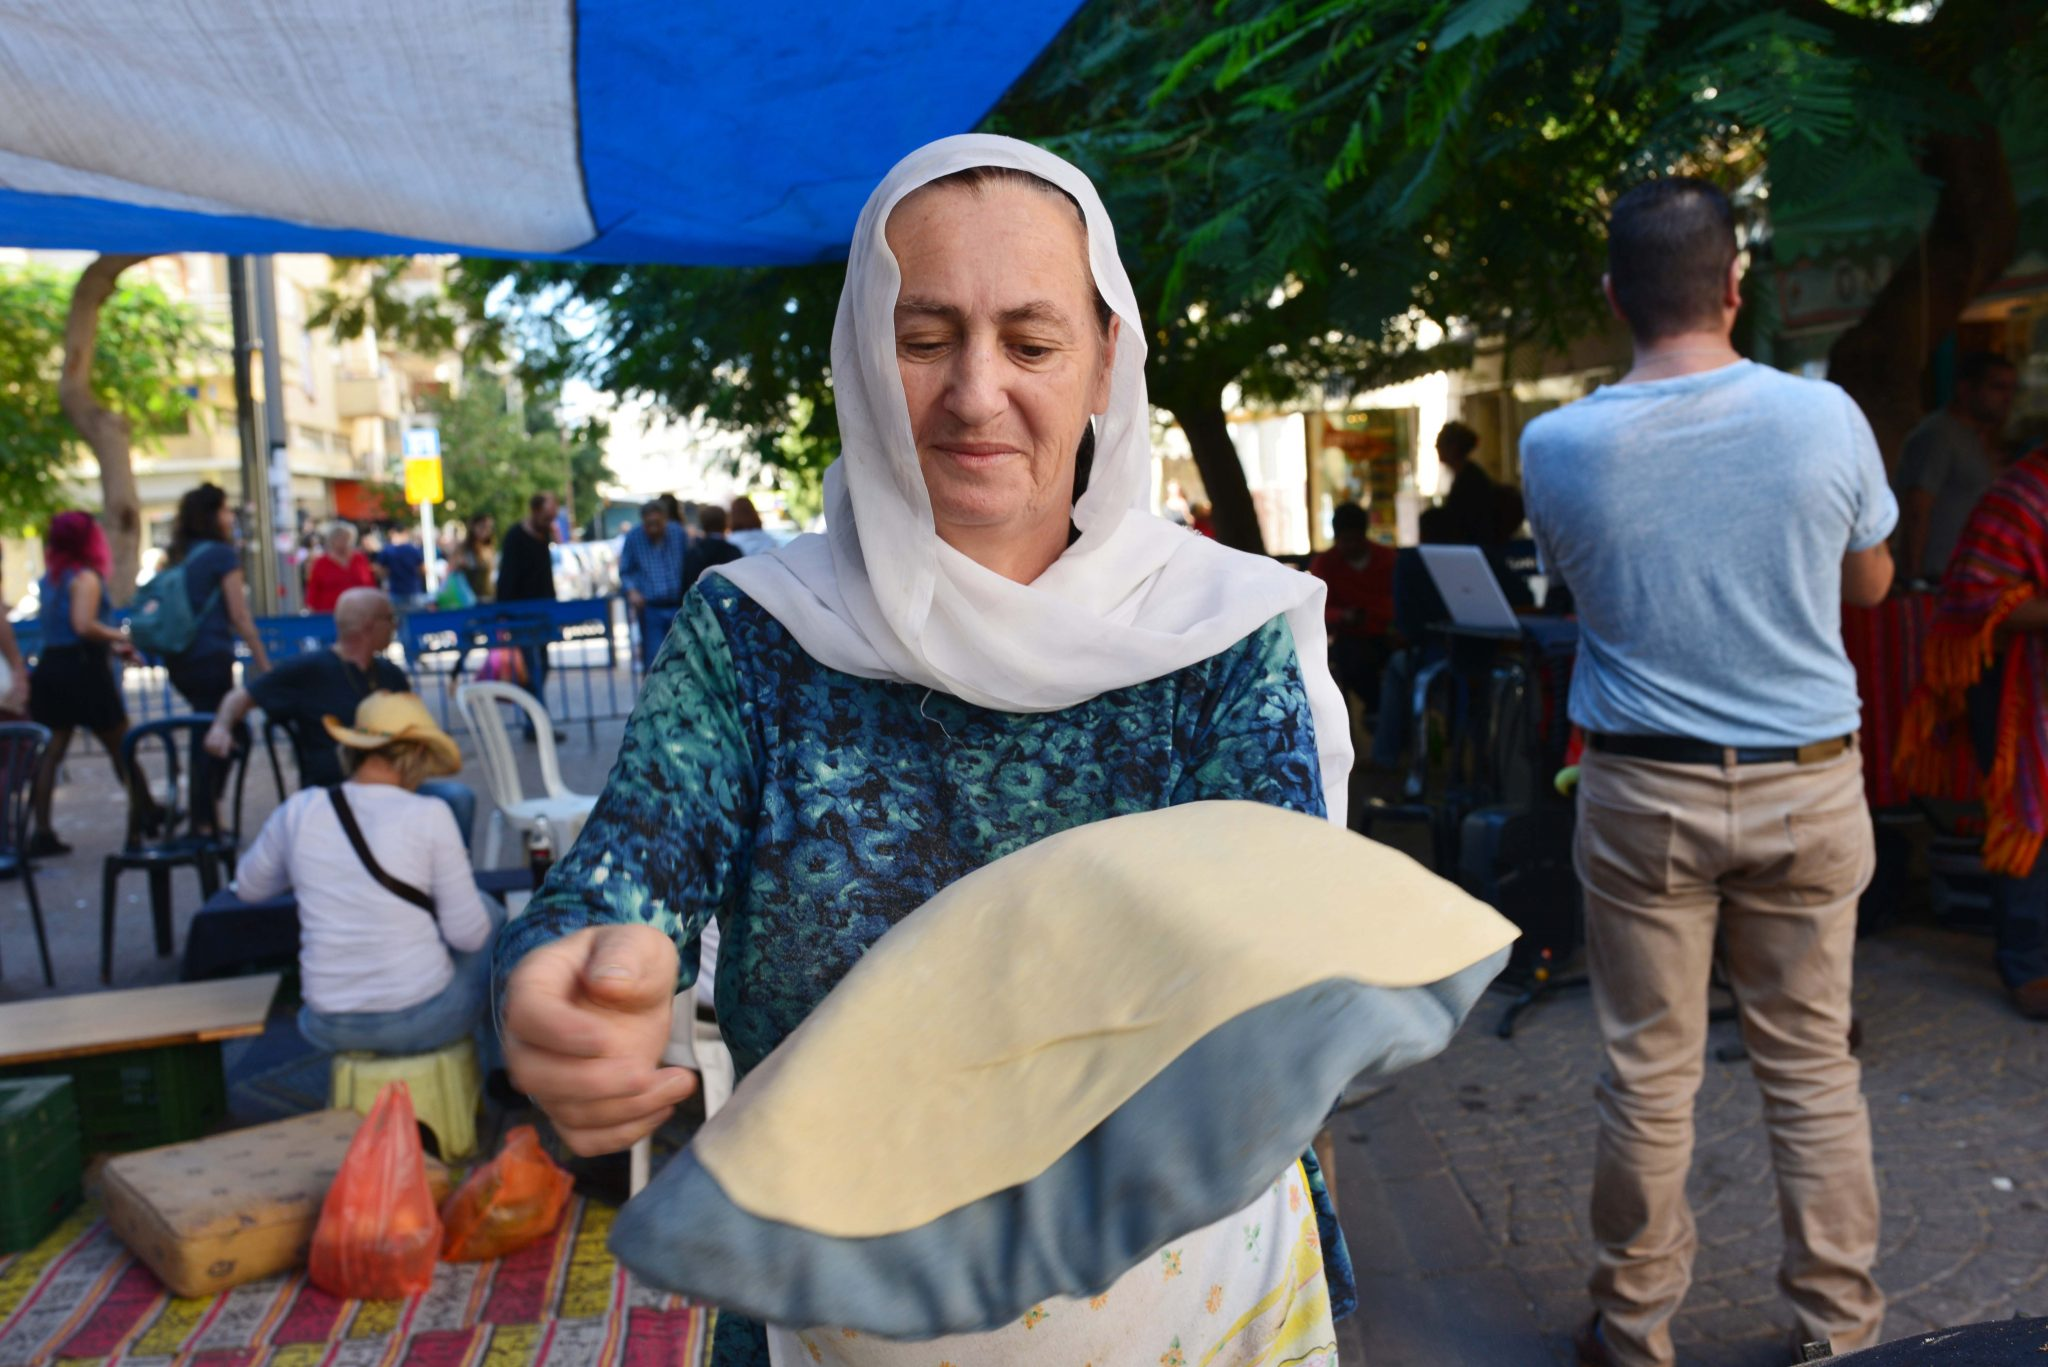 Israeli Druze woman preparing saj in Carmel Market